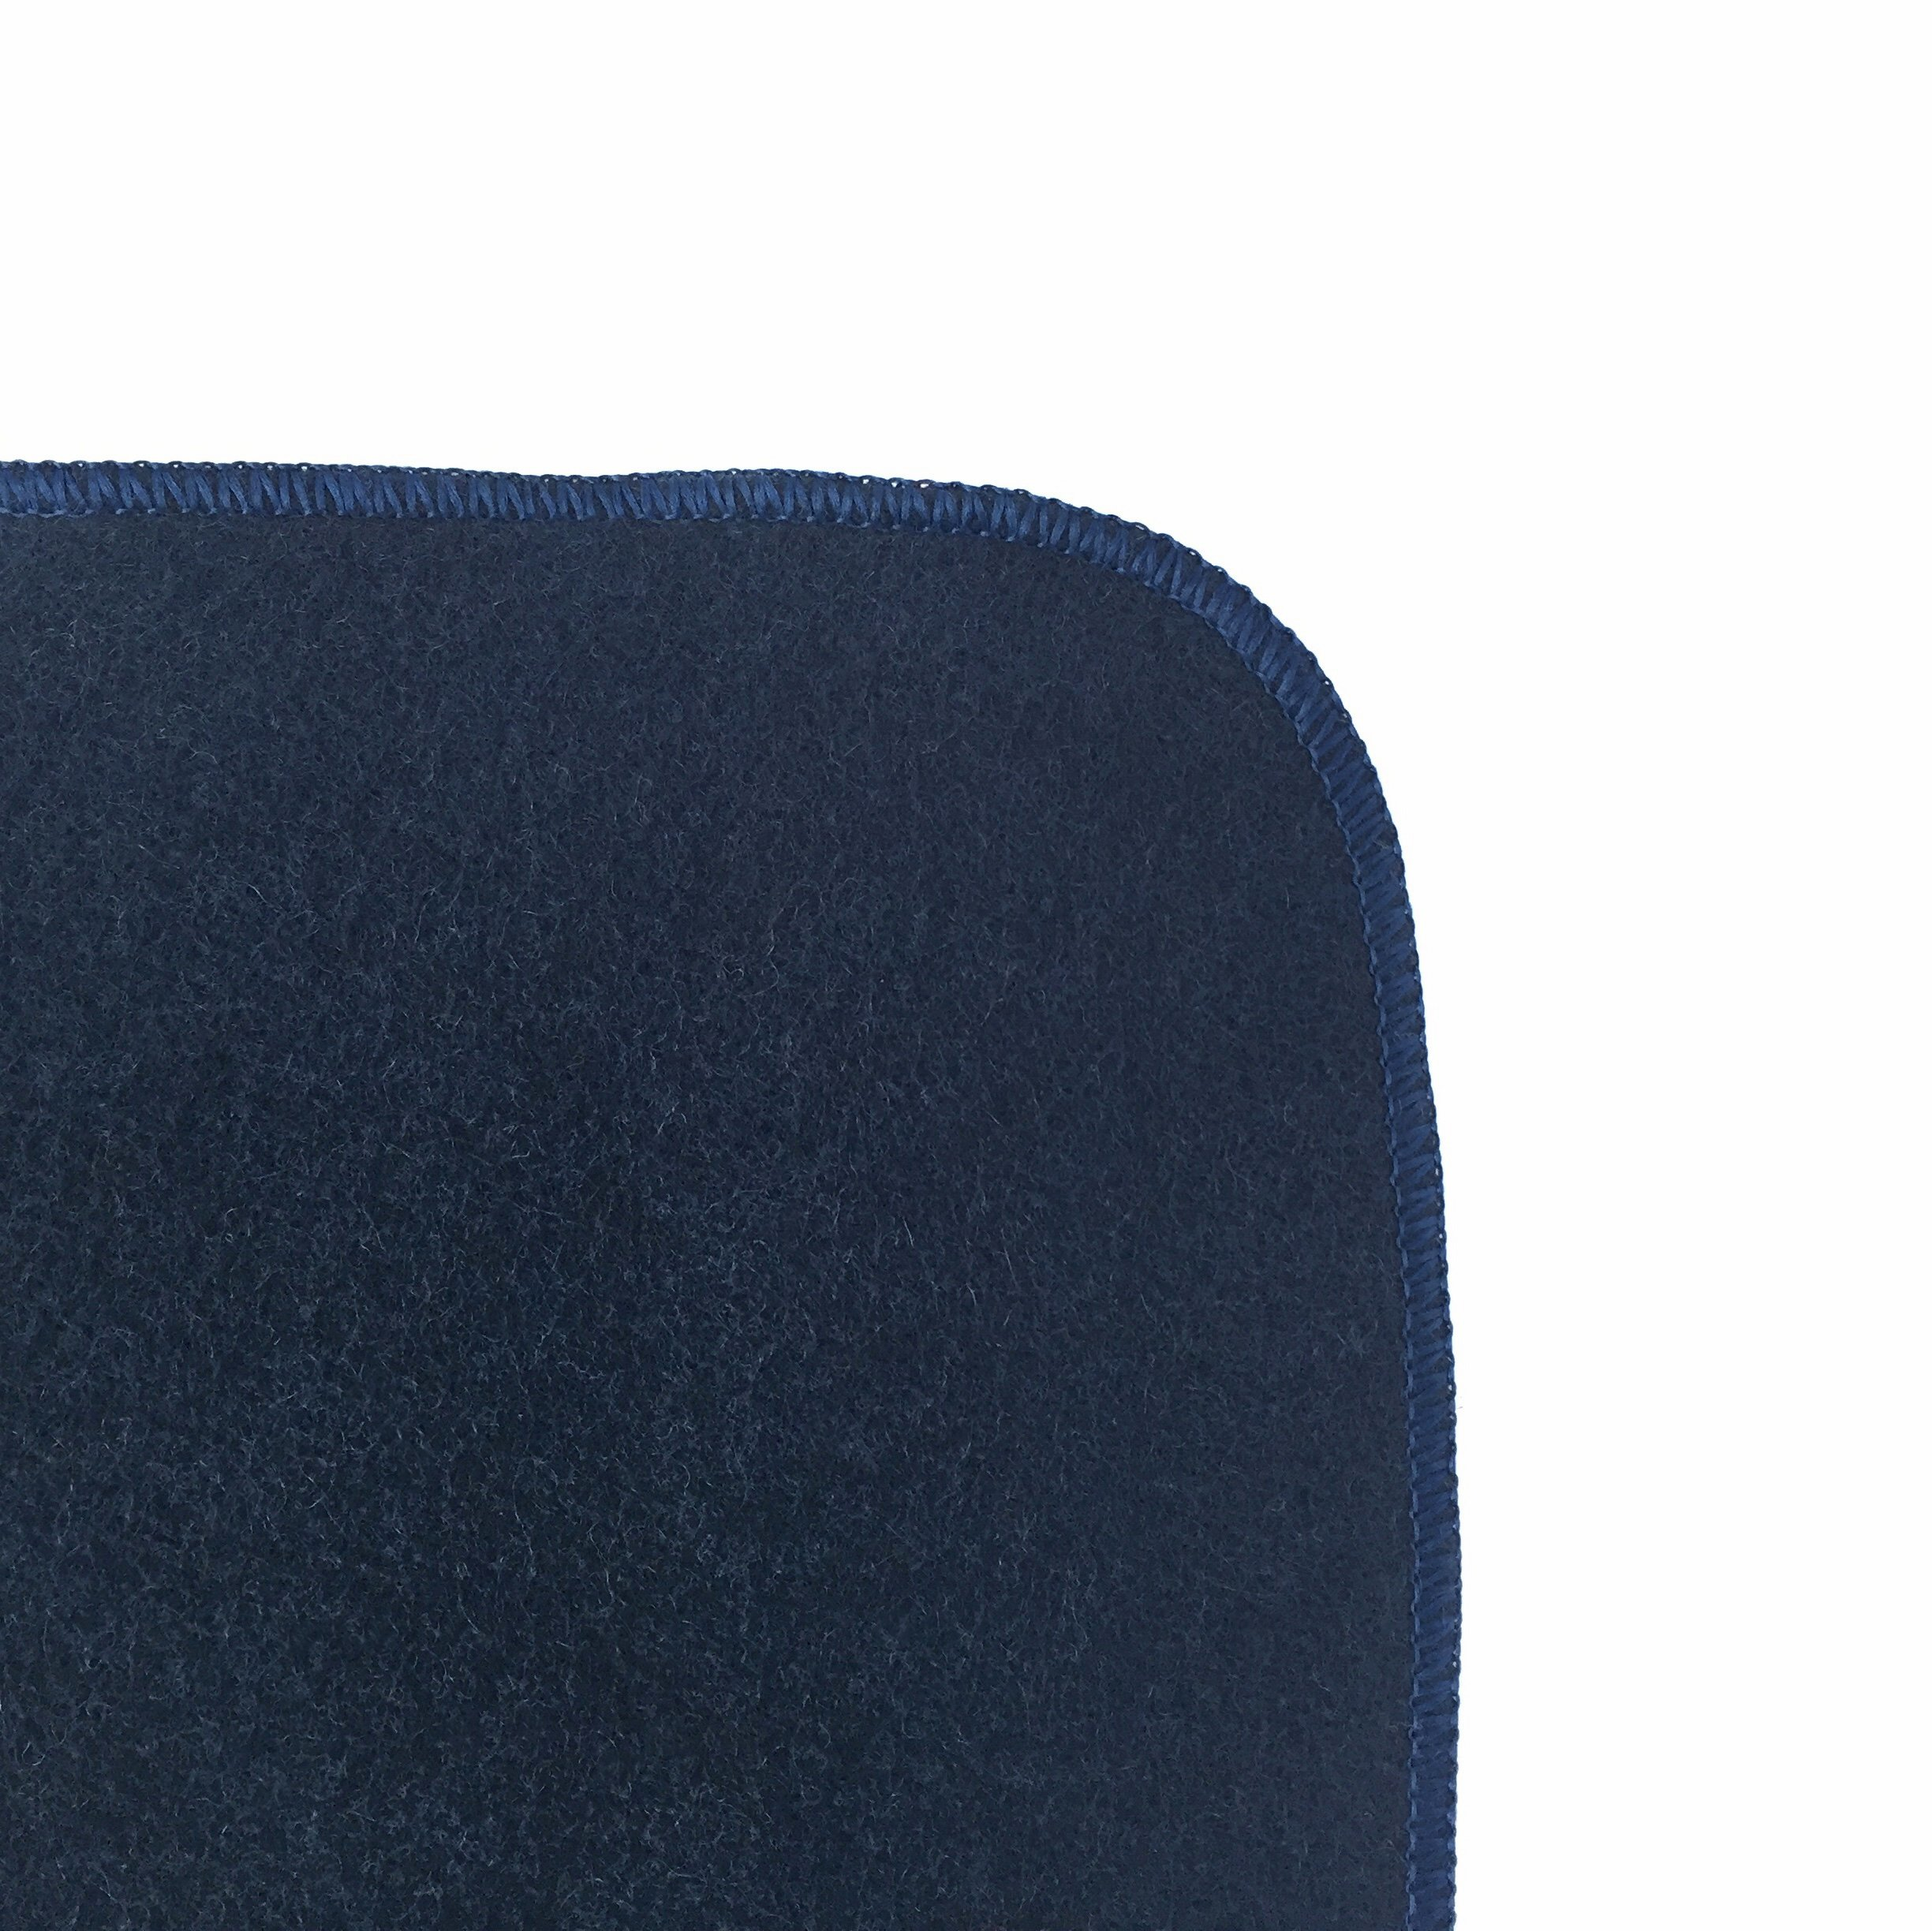 EKTOS 100% Wool Blanket, Navy Blue, Warm & Heavy 5.5 lbs, Large Washable 66''x90'' Size, Perfect for Outdoor Camping, Survival & Emergency Preparedness Use by EKTOS (Image #3)